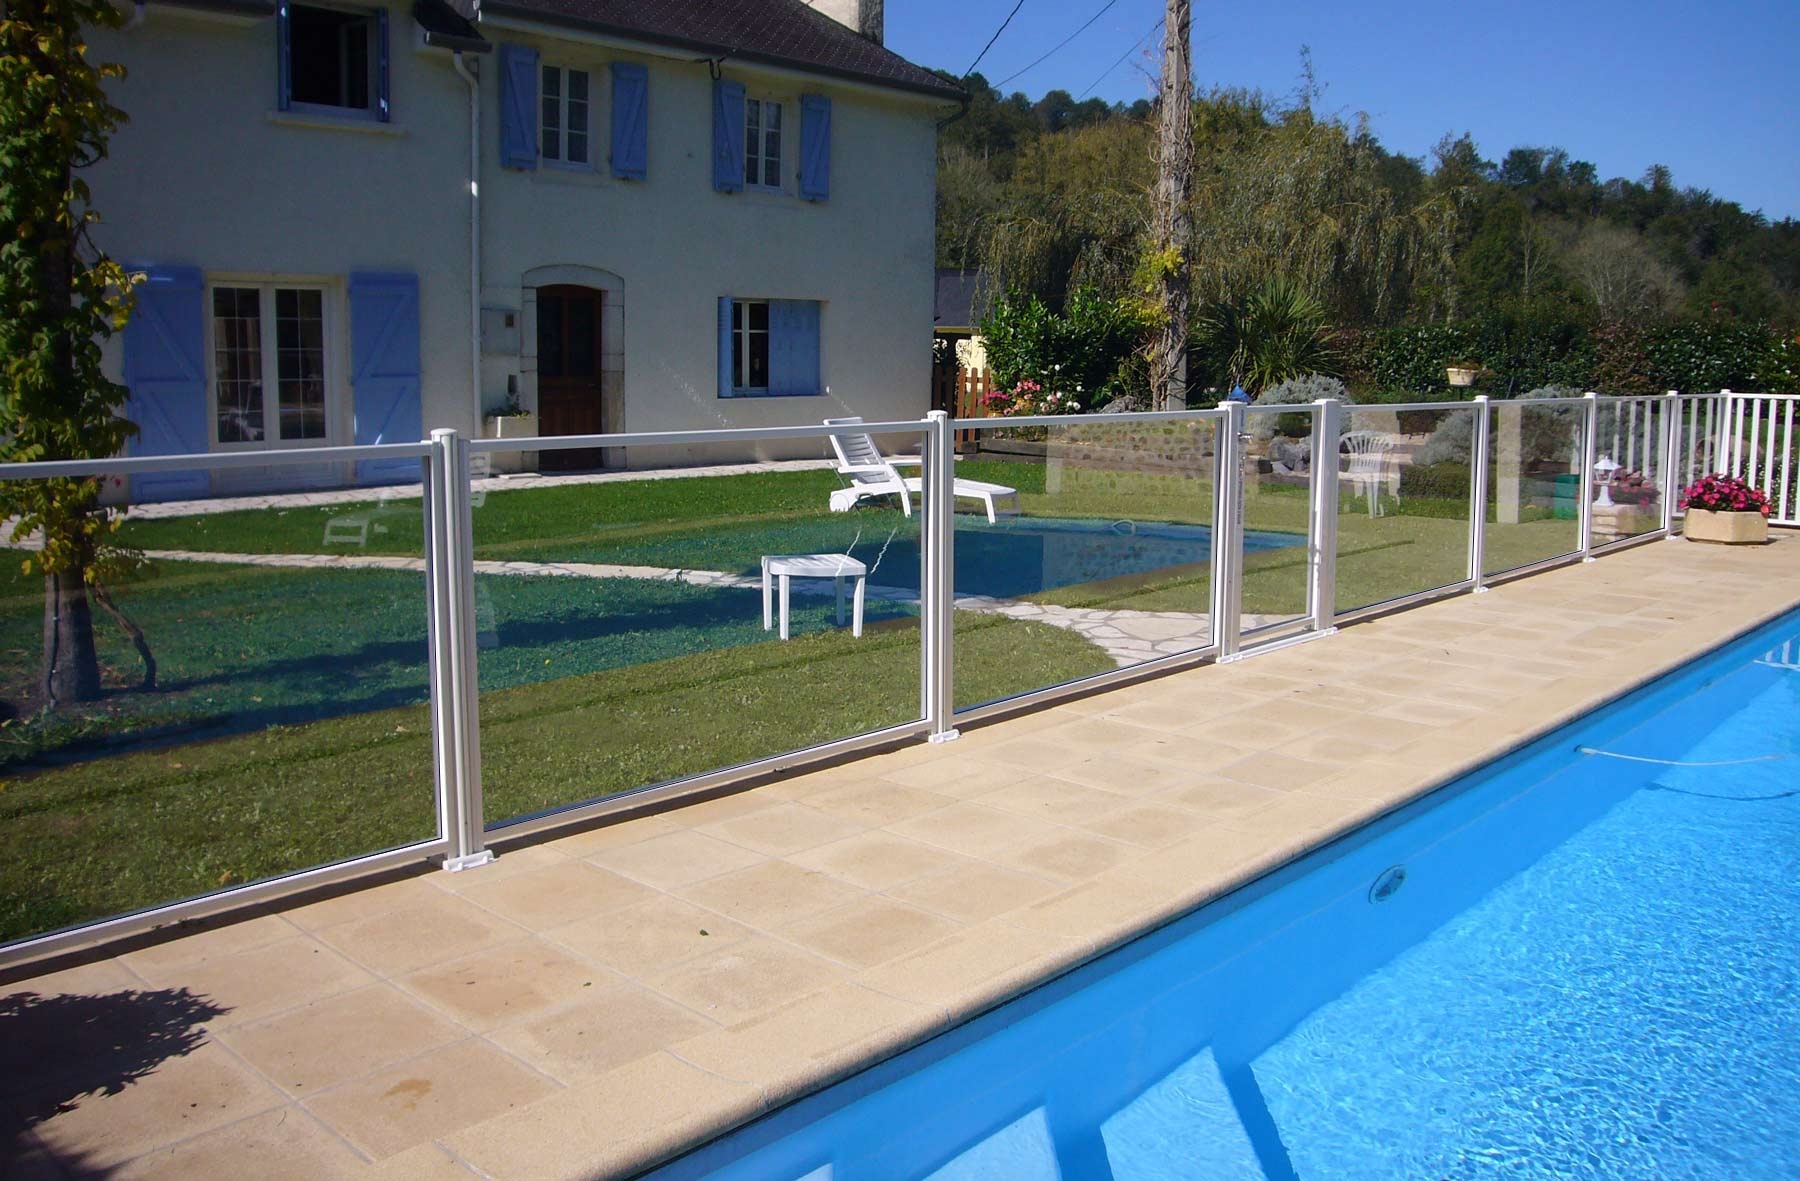 Les barri res en verre de protection d 39 atlantic barriere for Barriere de piscine en verre